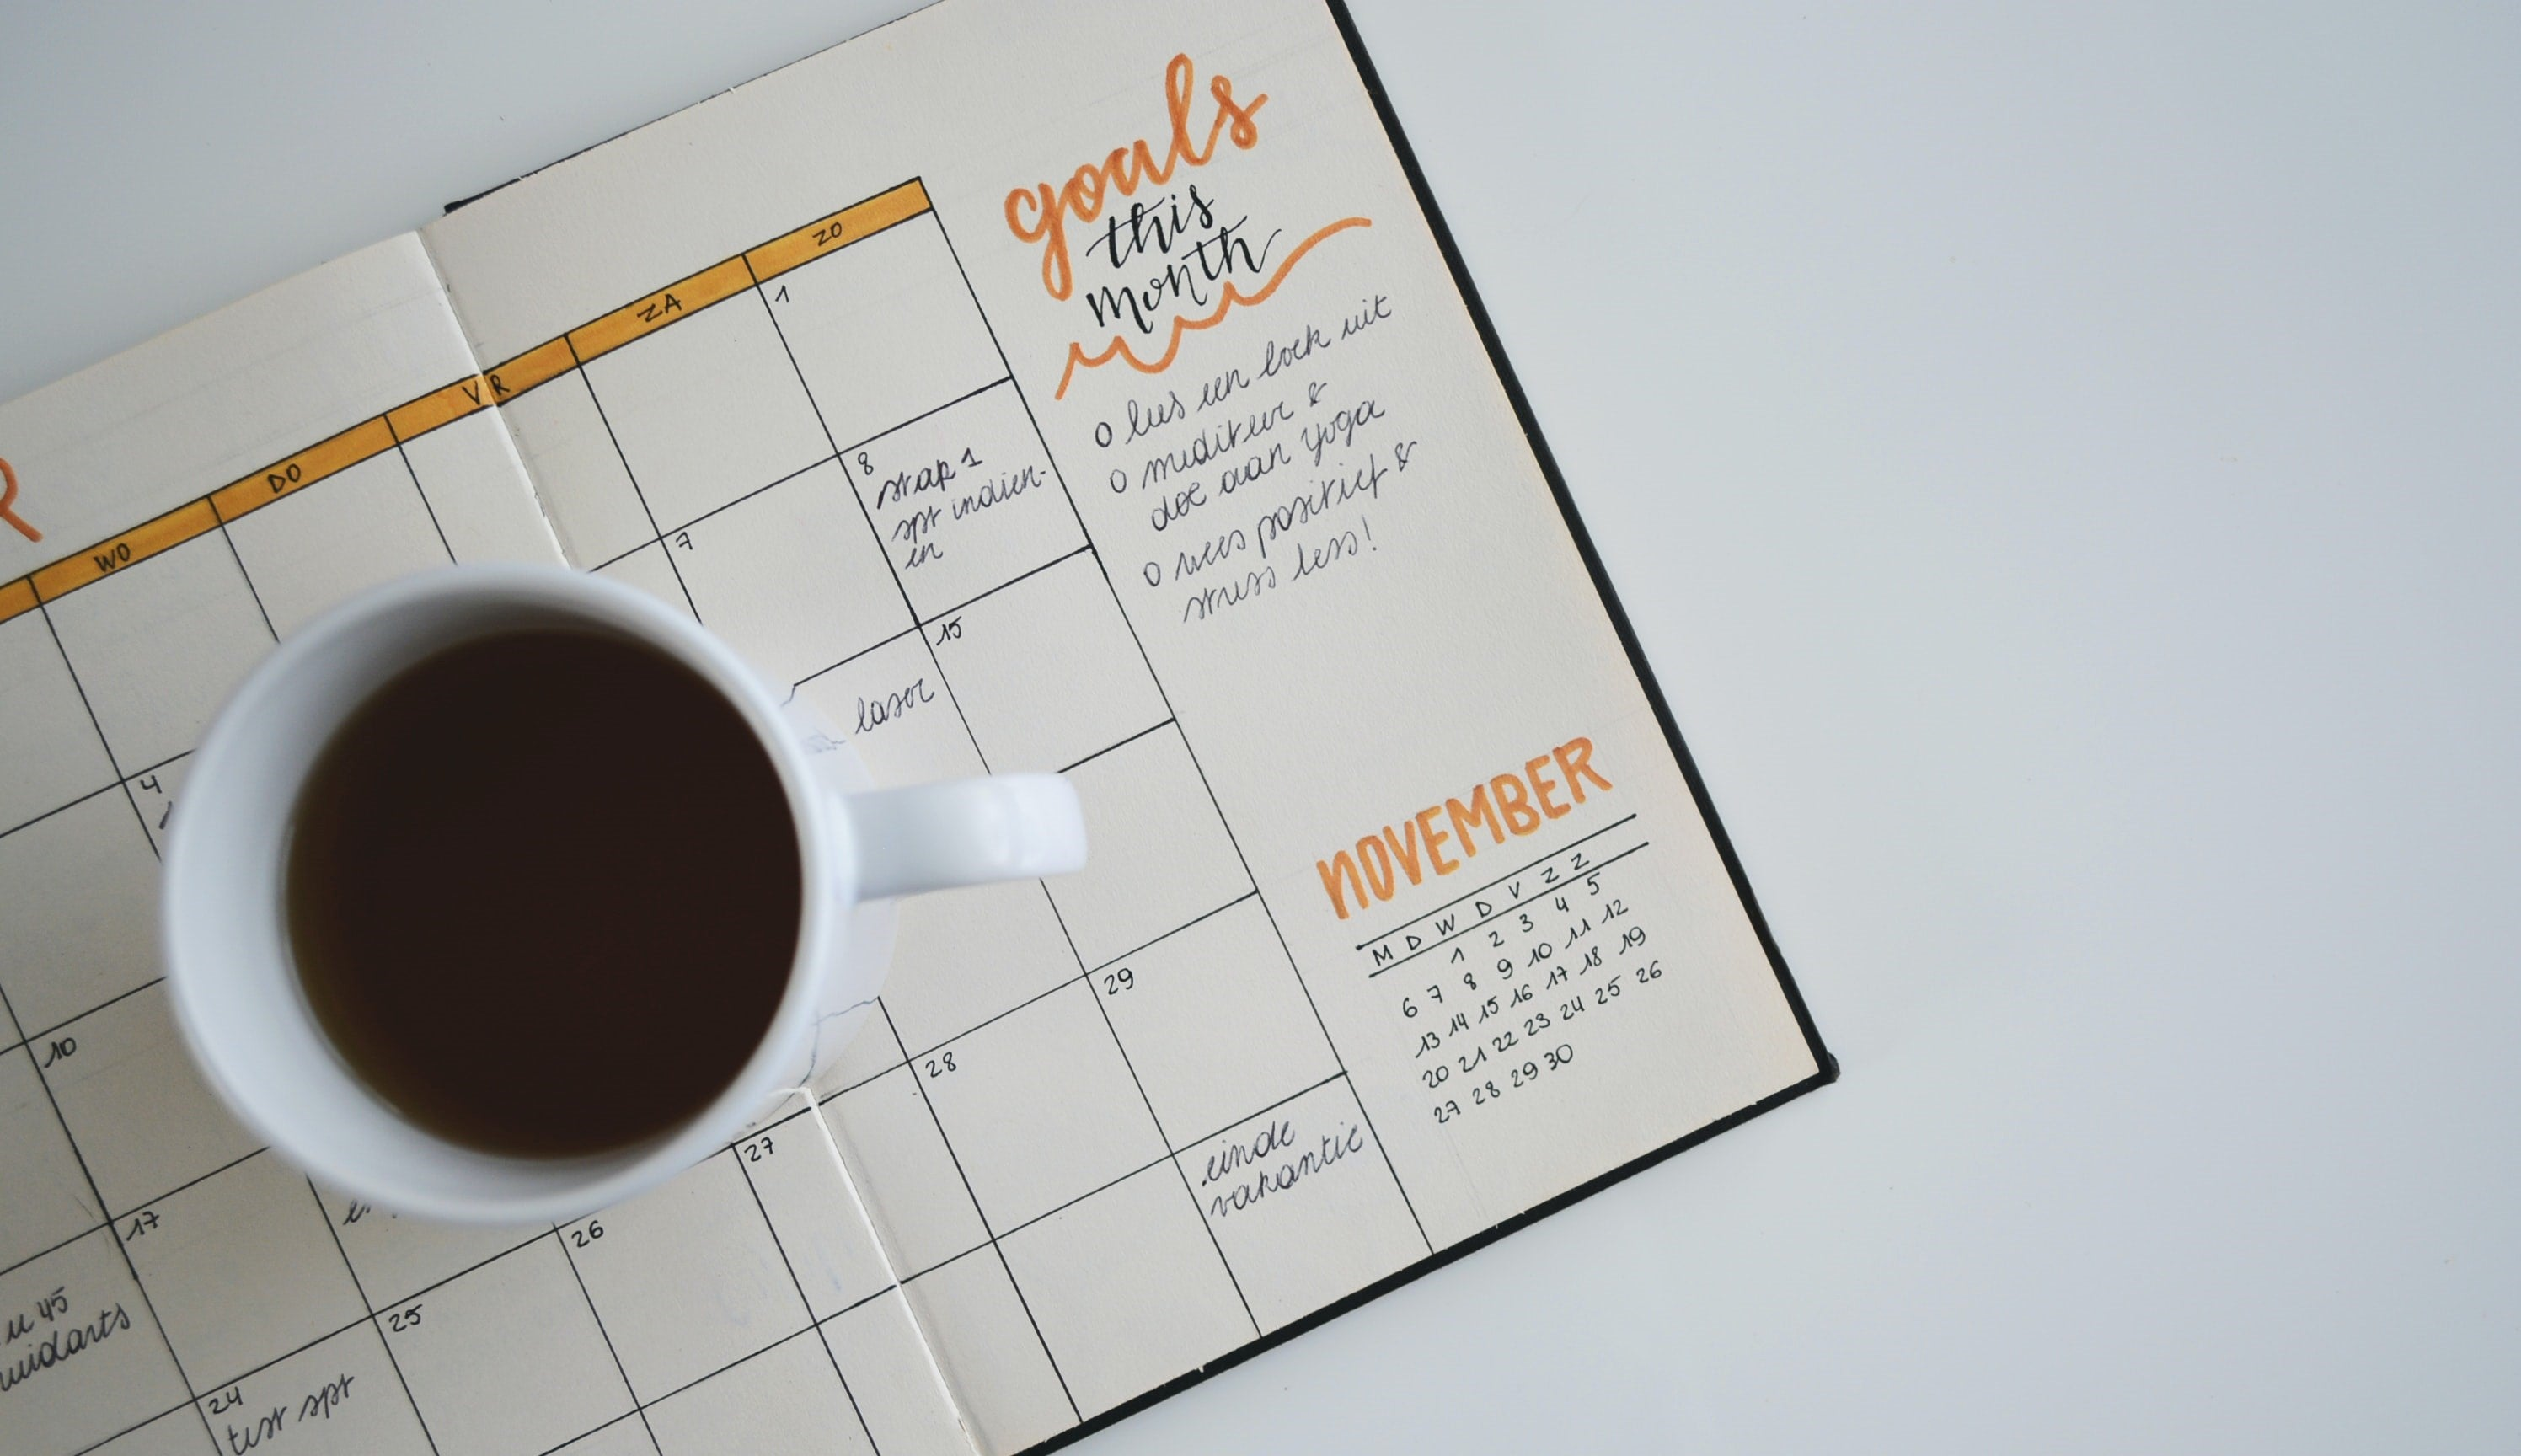 A cup of coffee on a notebook